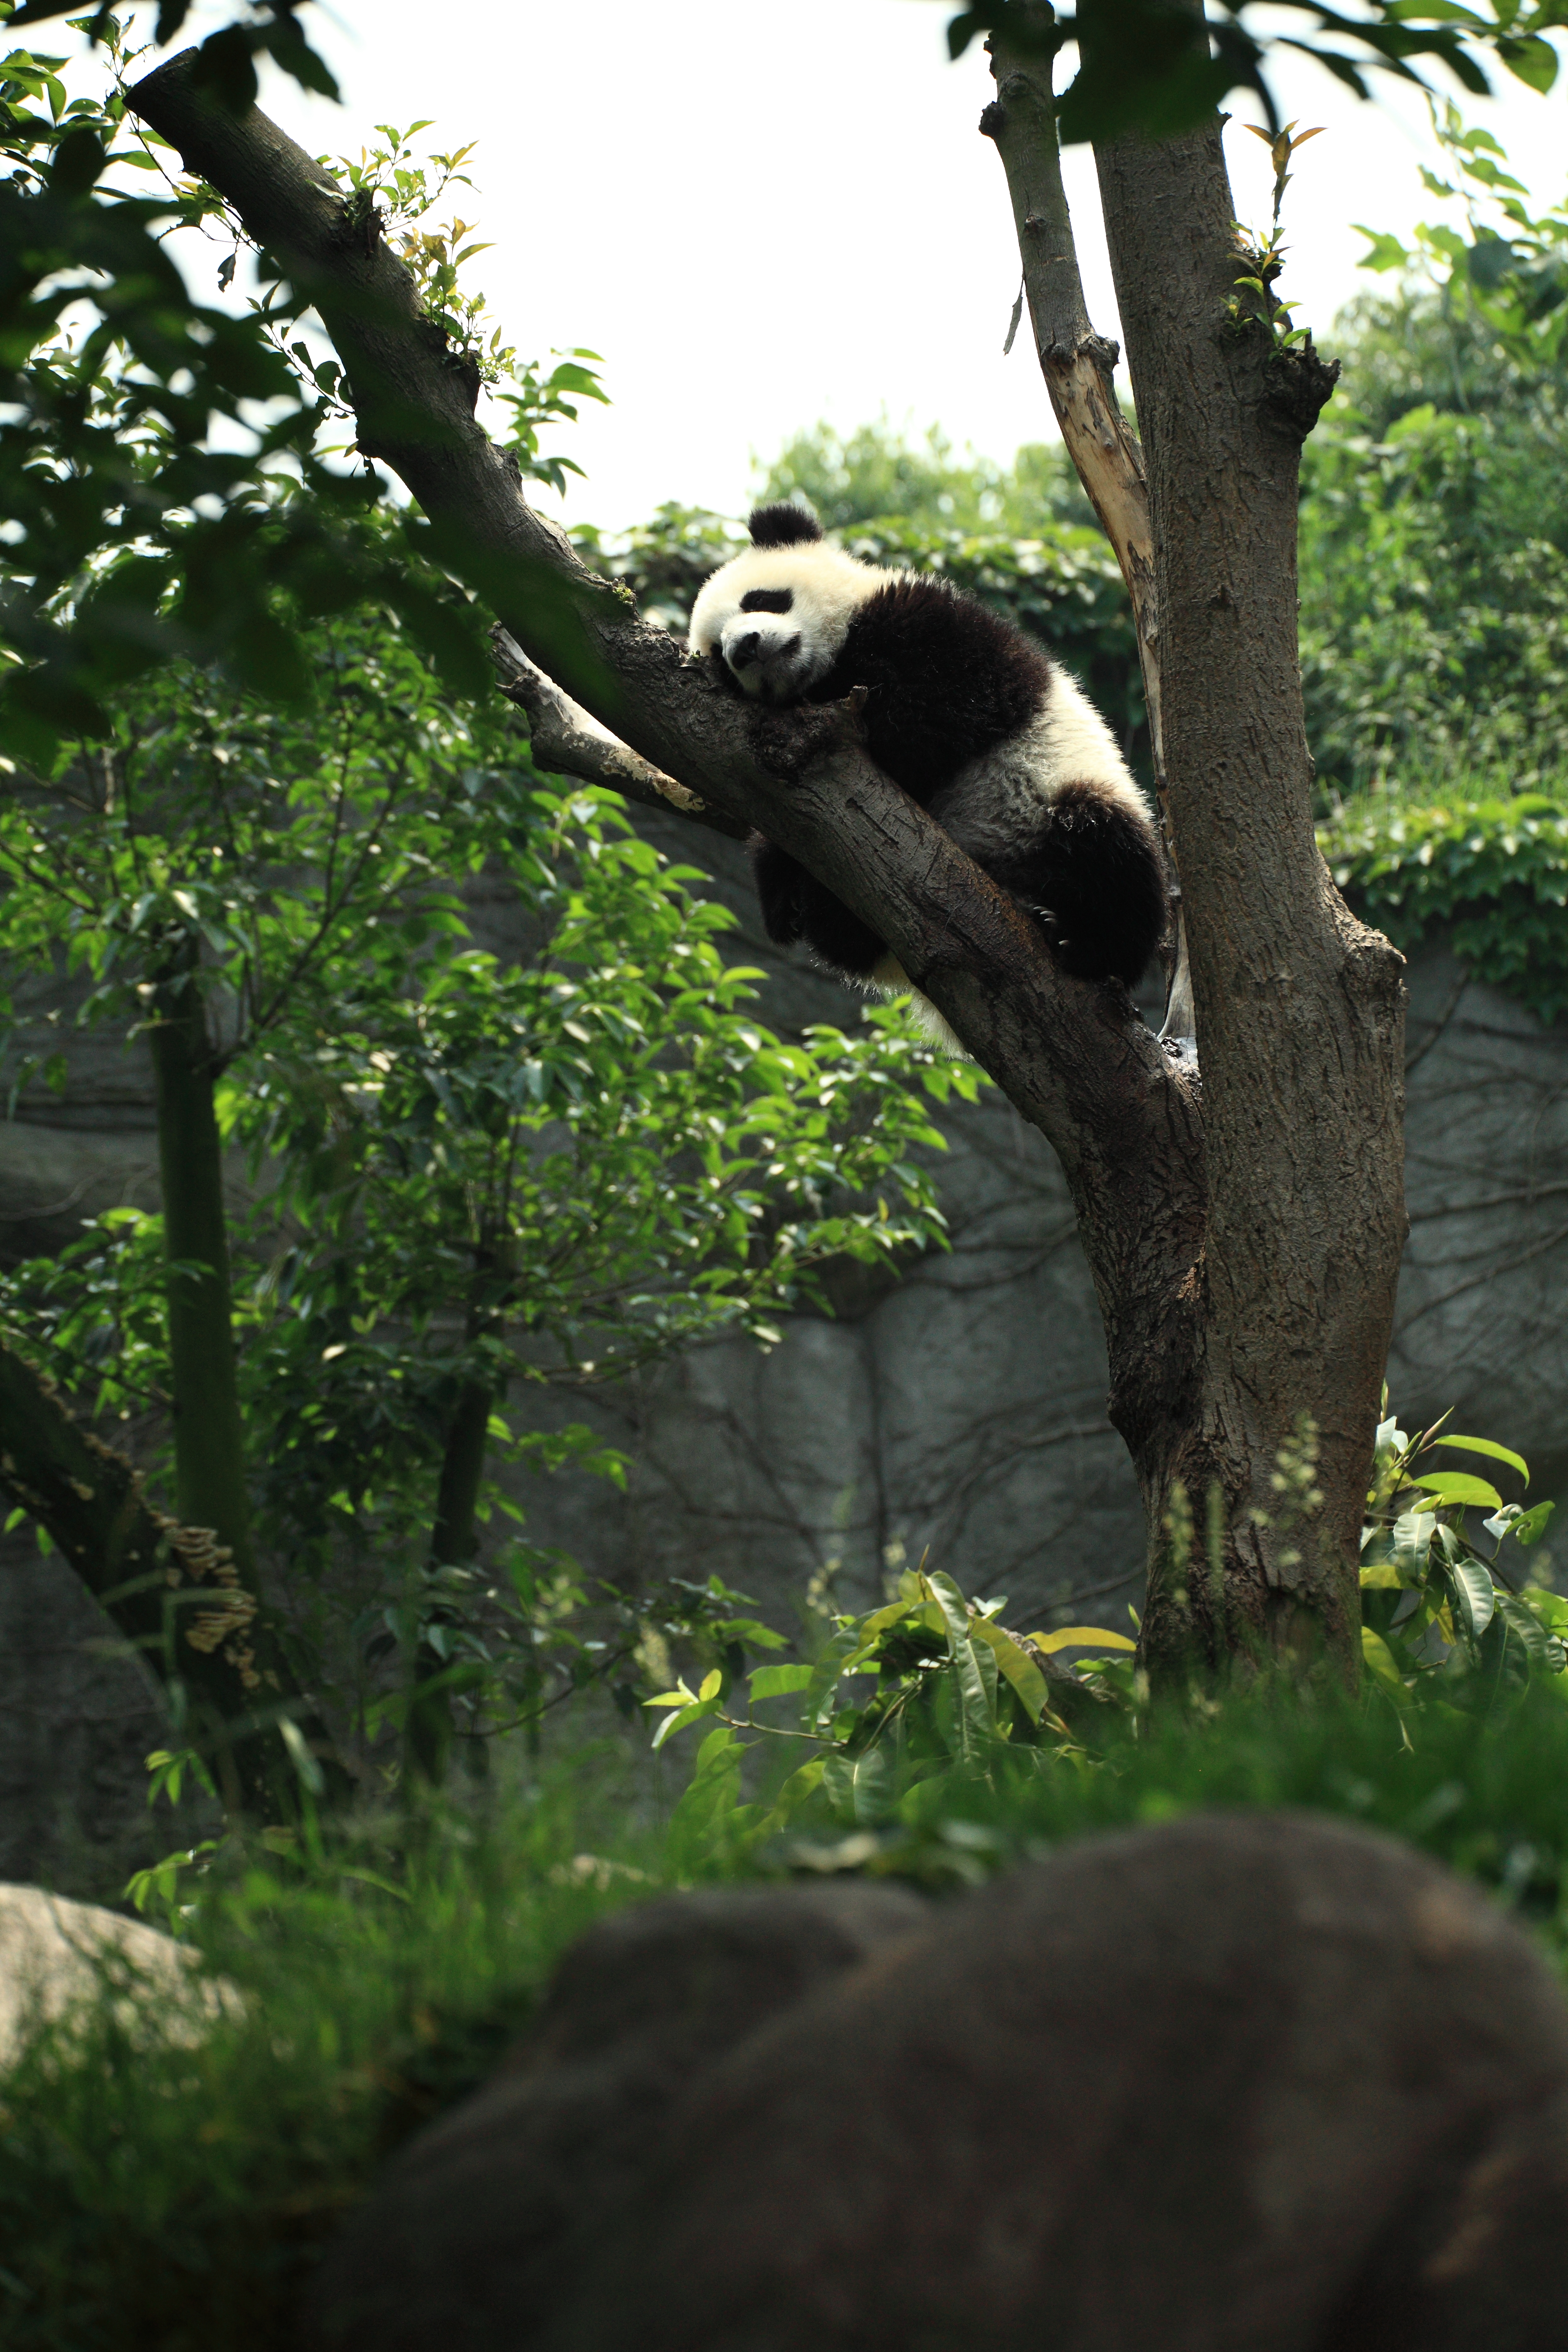 84887 download wallpaper Animals, Panda, Sleep, Dream, Wood, Tree screensavers and pictures for free